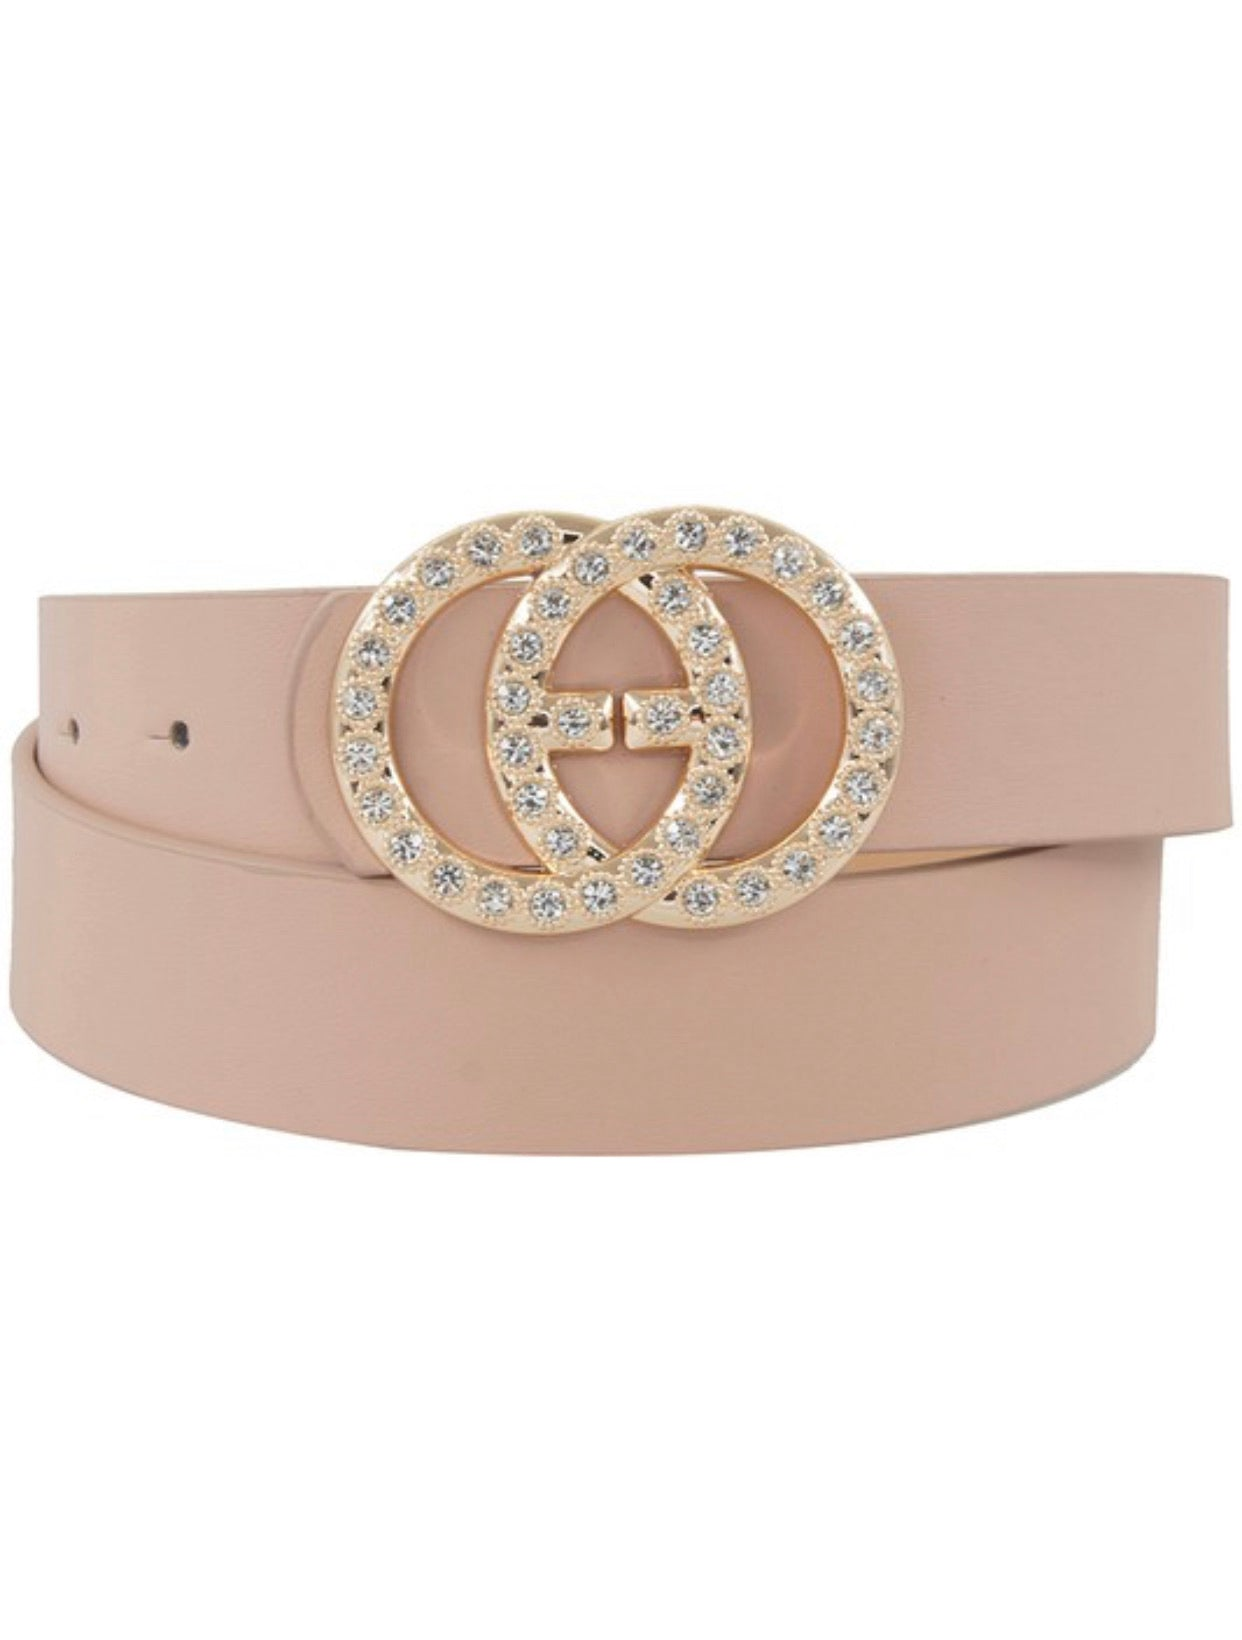 Blush Vegan Leather Belt